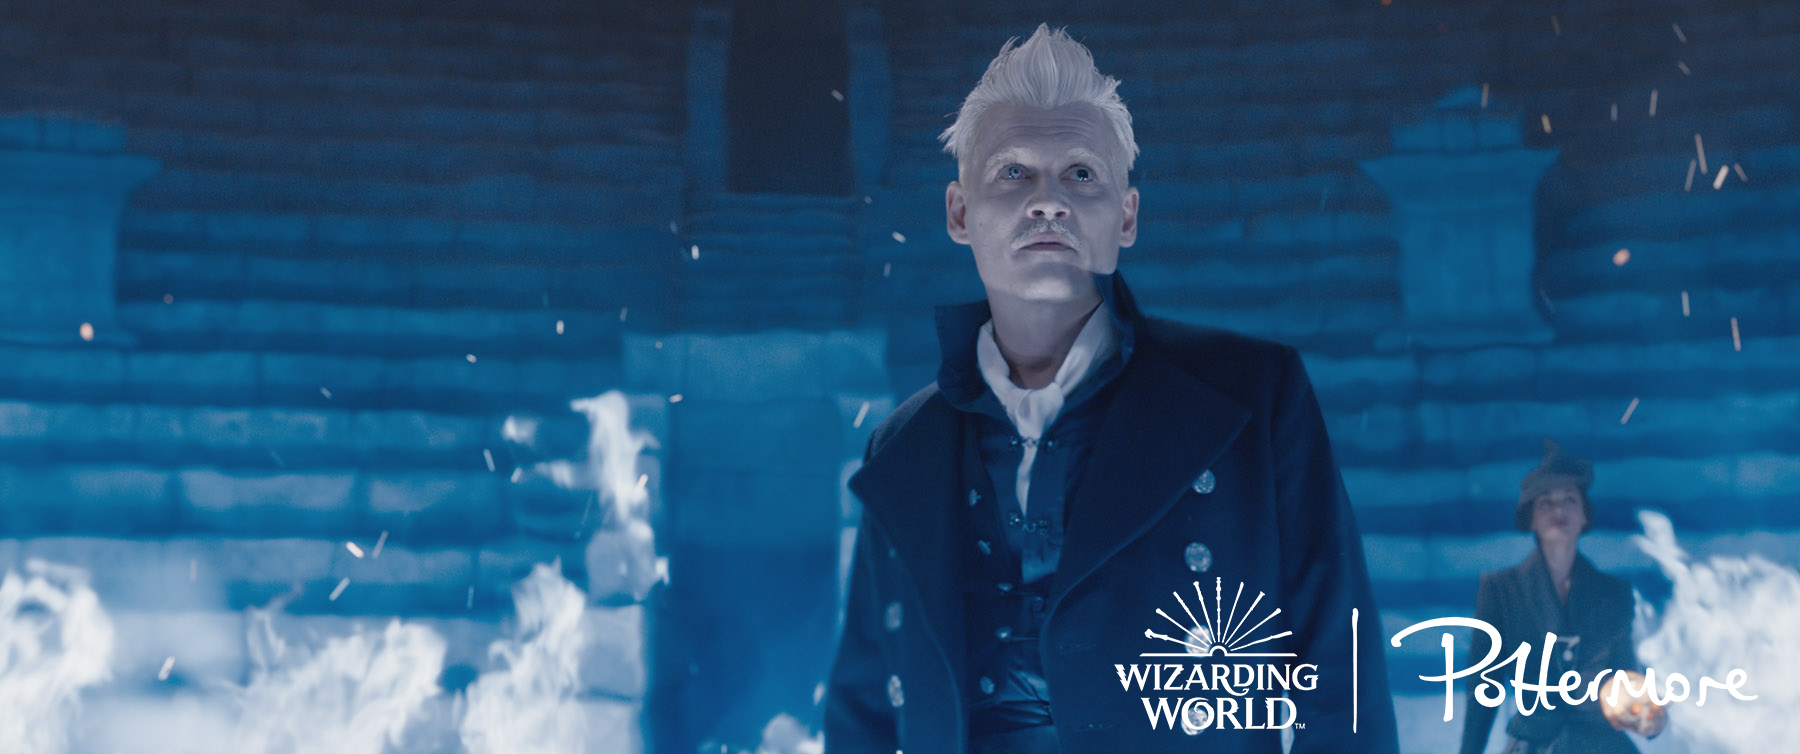 Everything we noticed from the Fantastic Beasts: The Crimes of